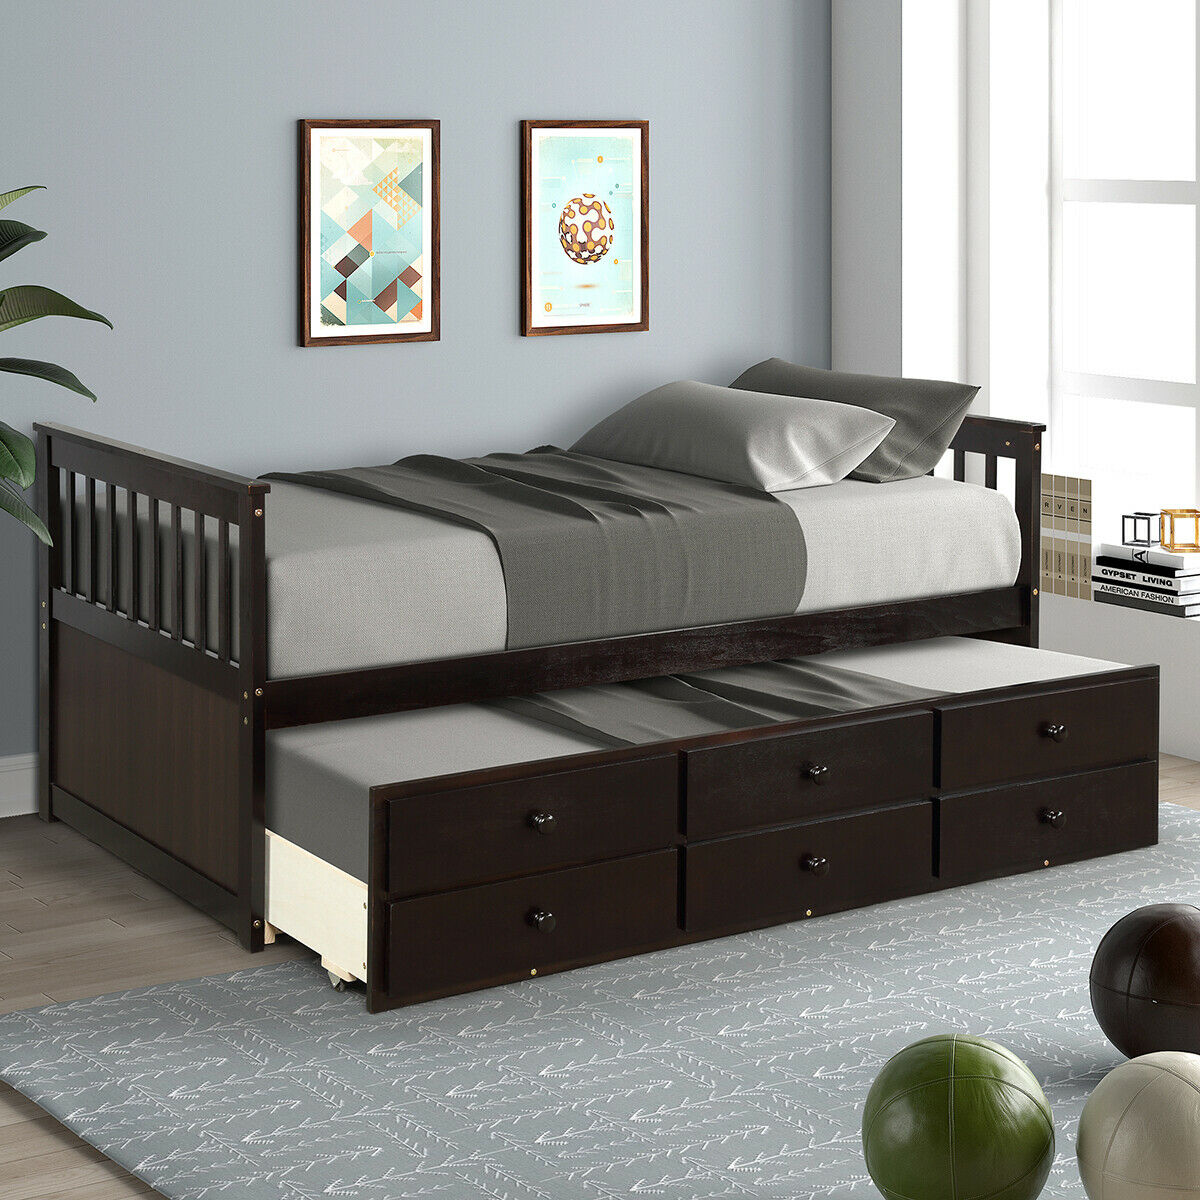 - Twin Size Mission Style Daybed With Trundle & Storage Drawers For